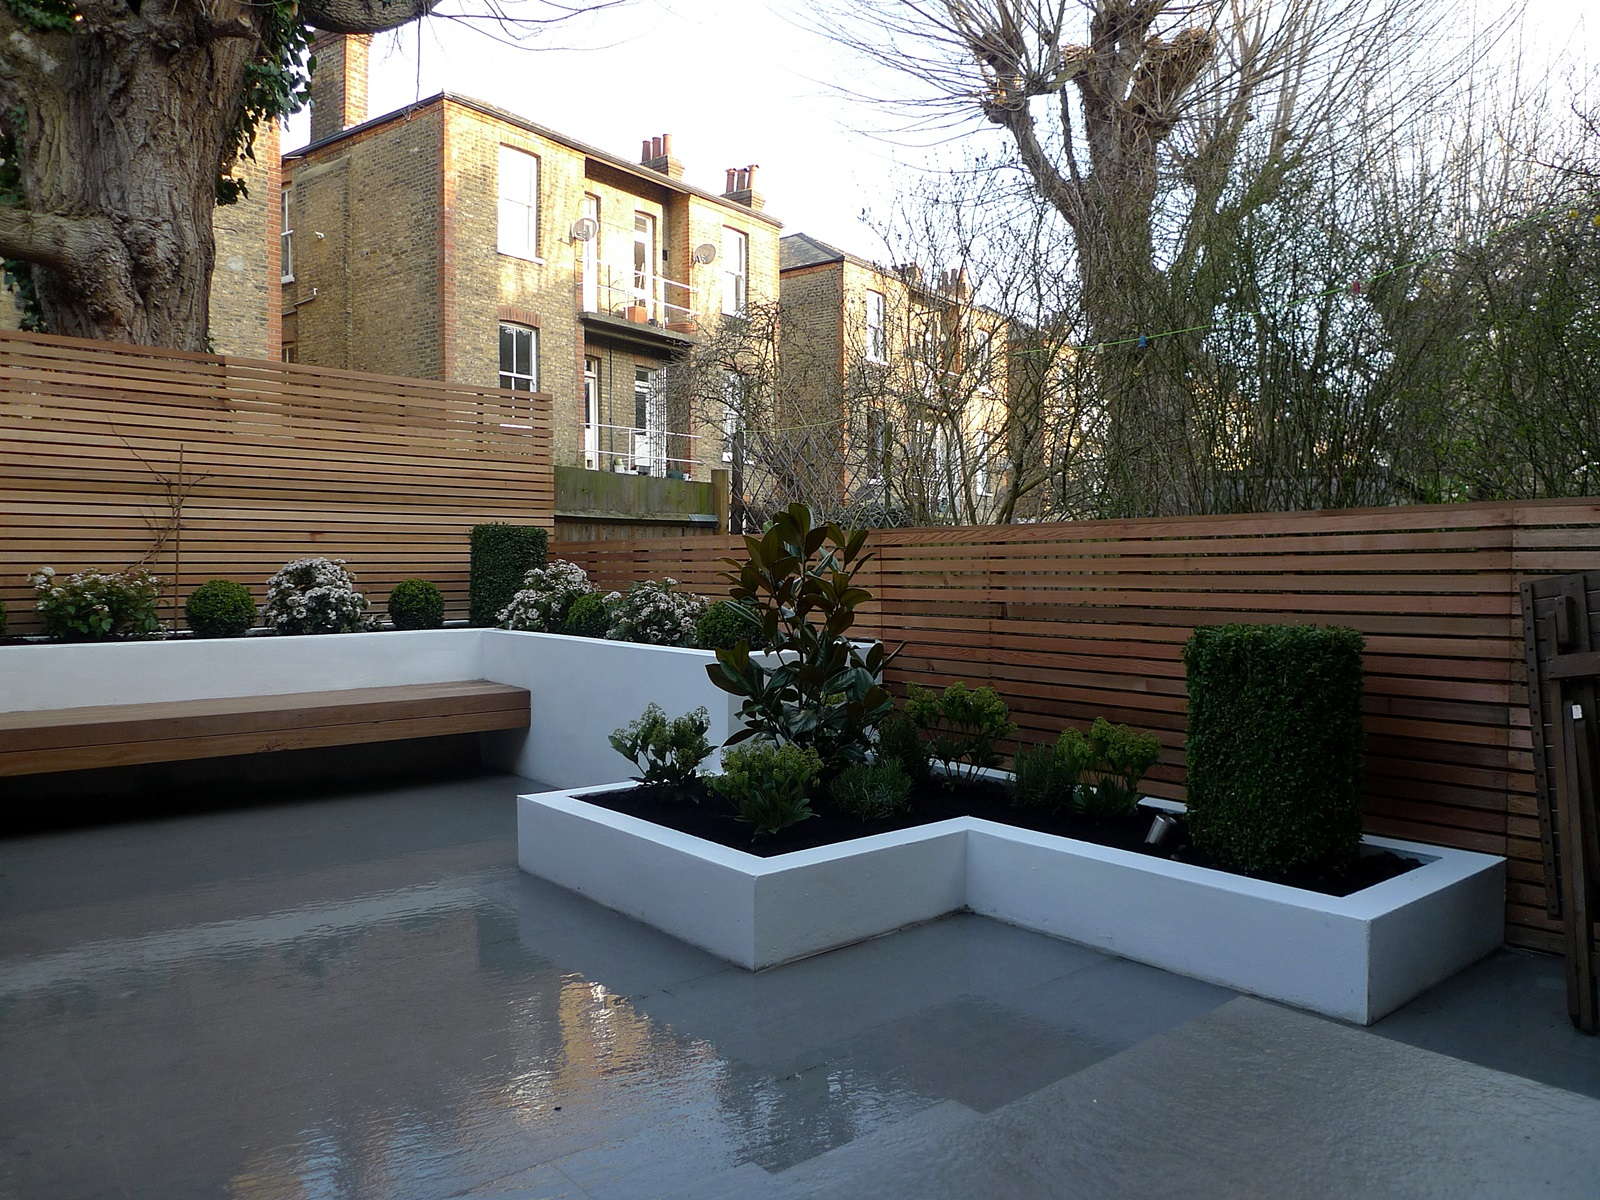 garden design designer clapham balham battersea small garden low